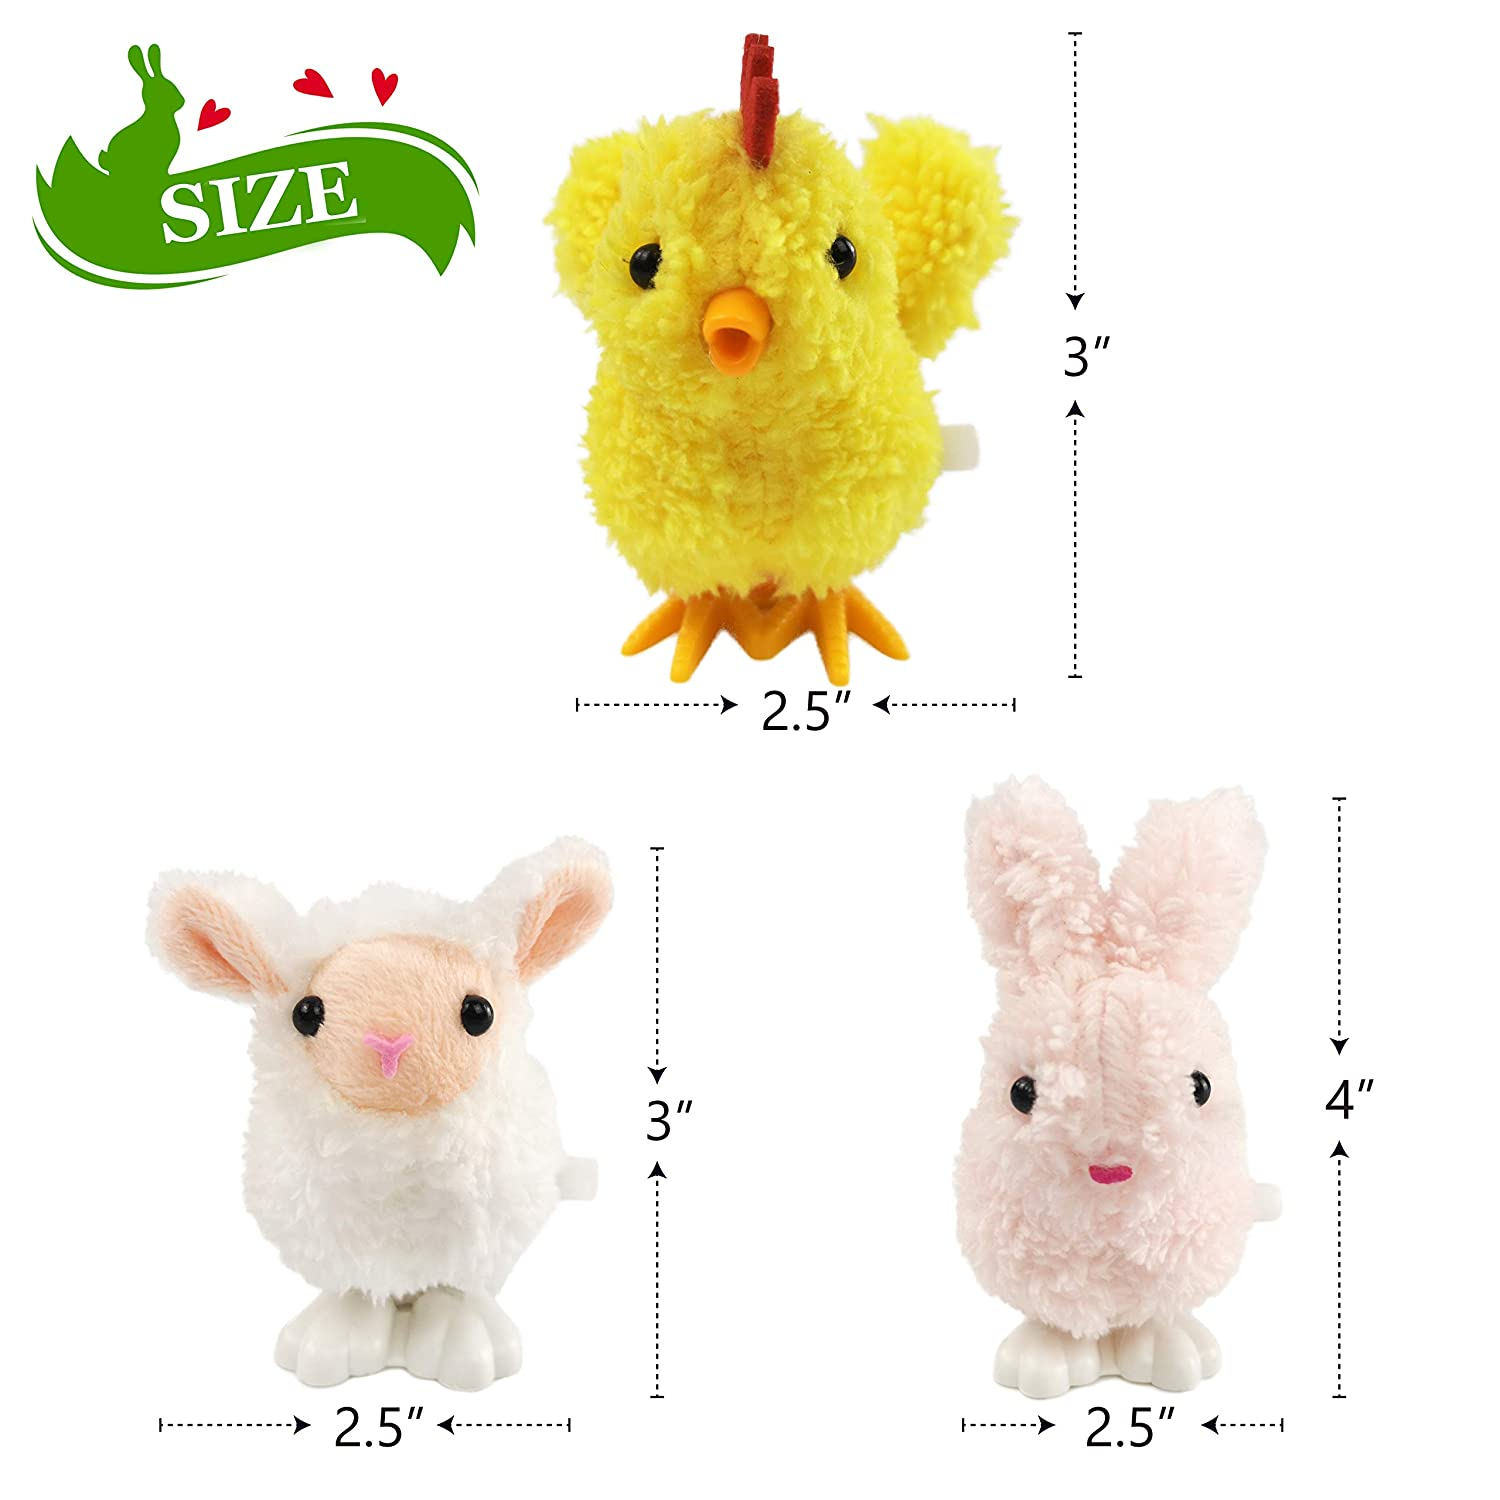 3/'/' Bstaofy 6pcs Wind up Animal Easter Toy Kit Hop Chick Bunny Jumping Plush Assorted Fuzzy Flipping Bounce Kids Stuffed Gift Set Egg Hunt Clockwork Prop Dancing Sheep Party Favor